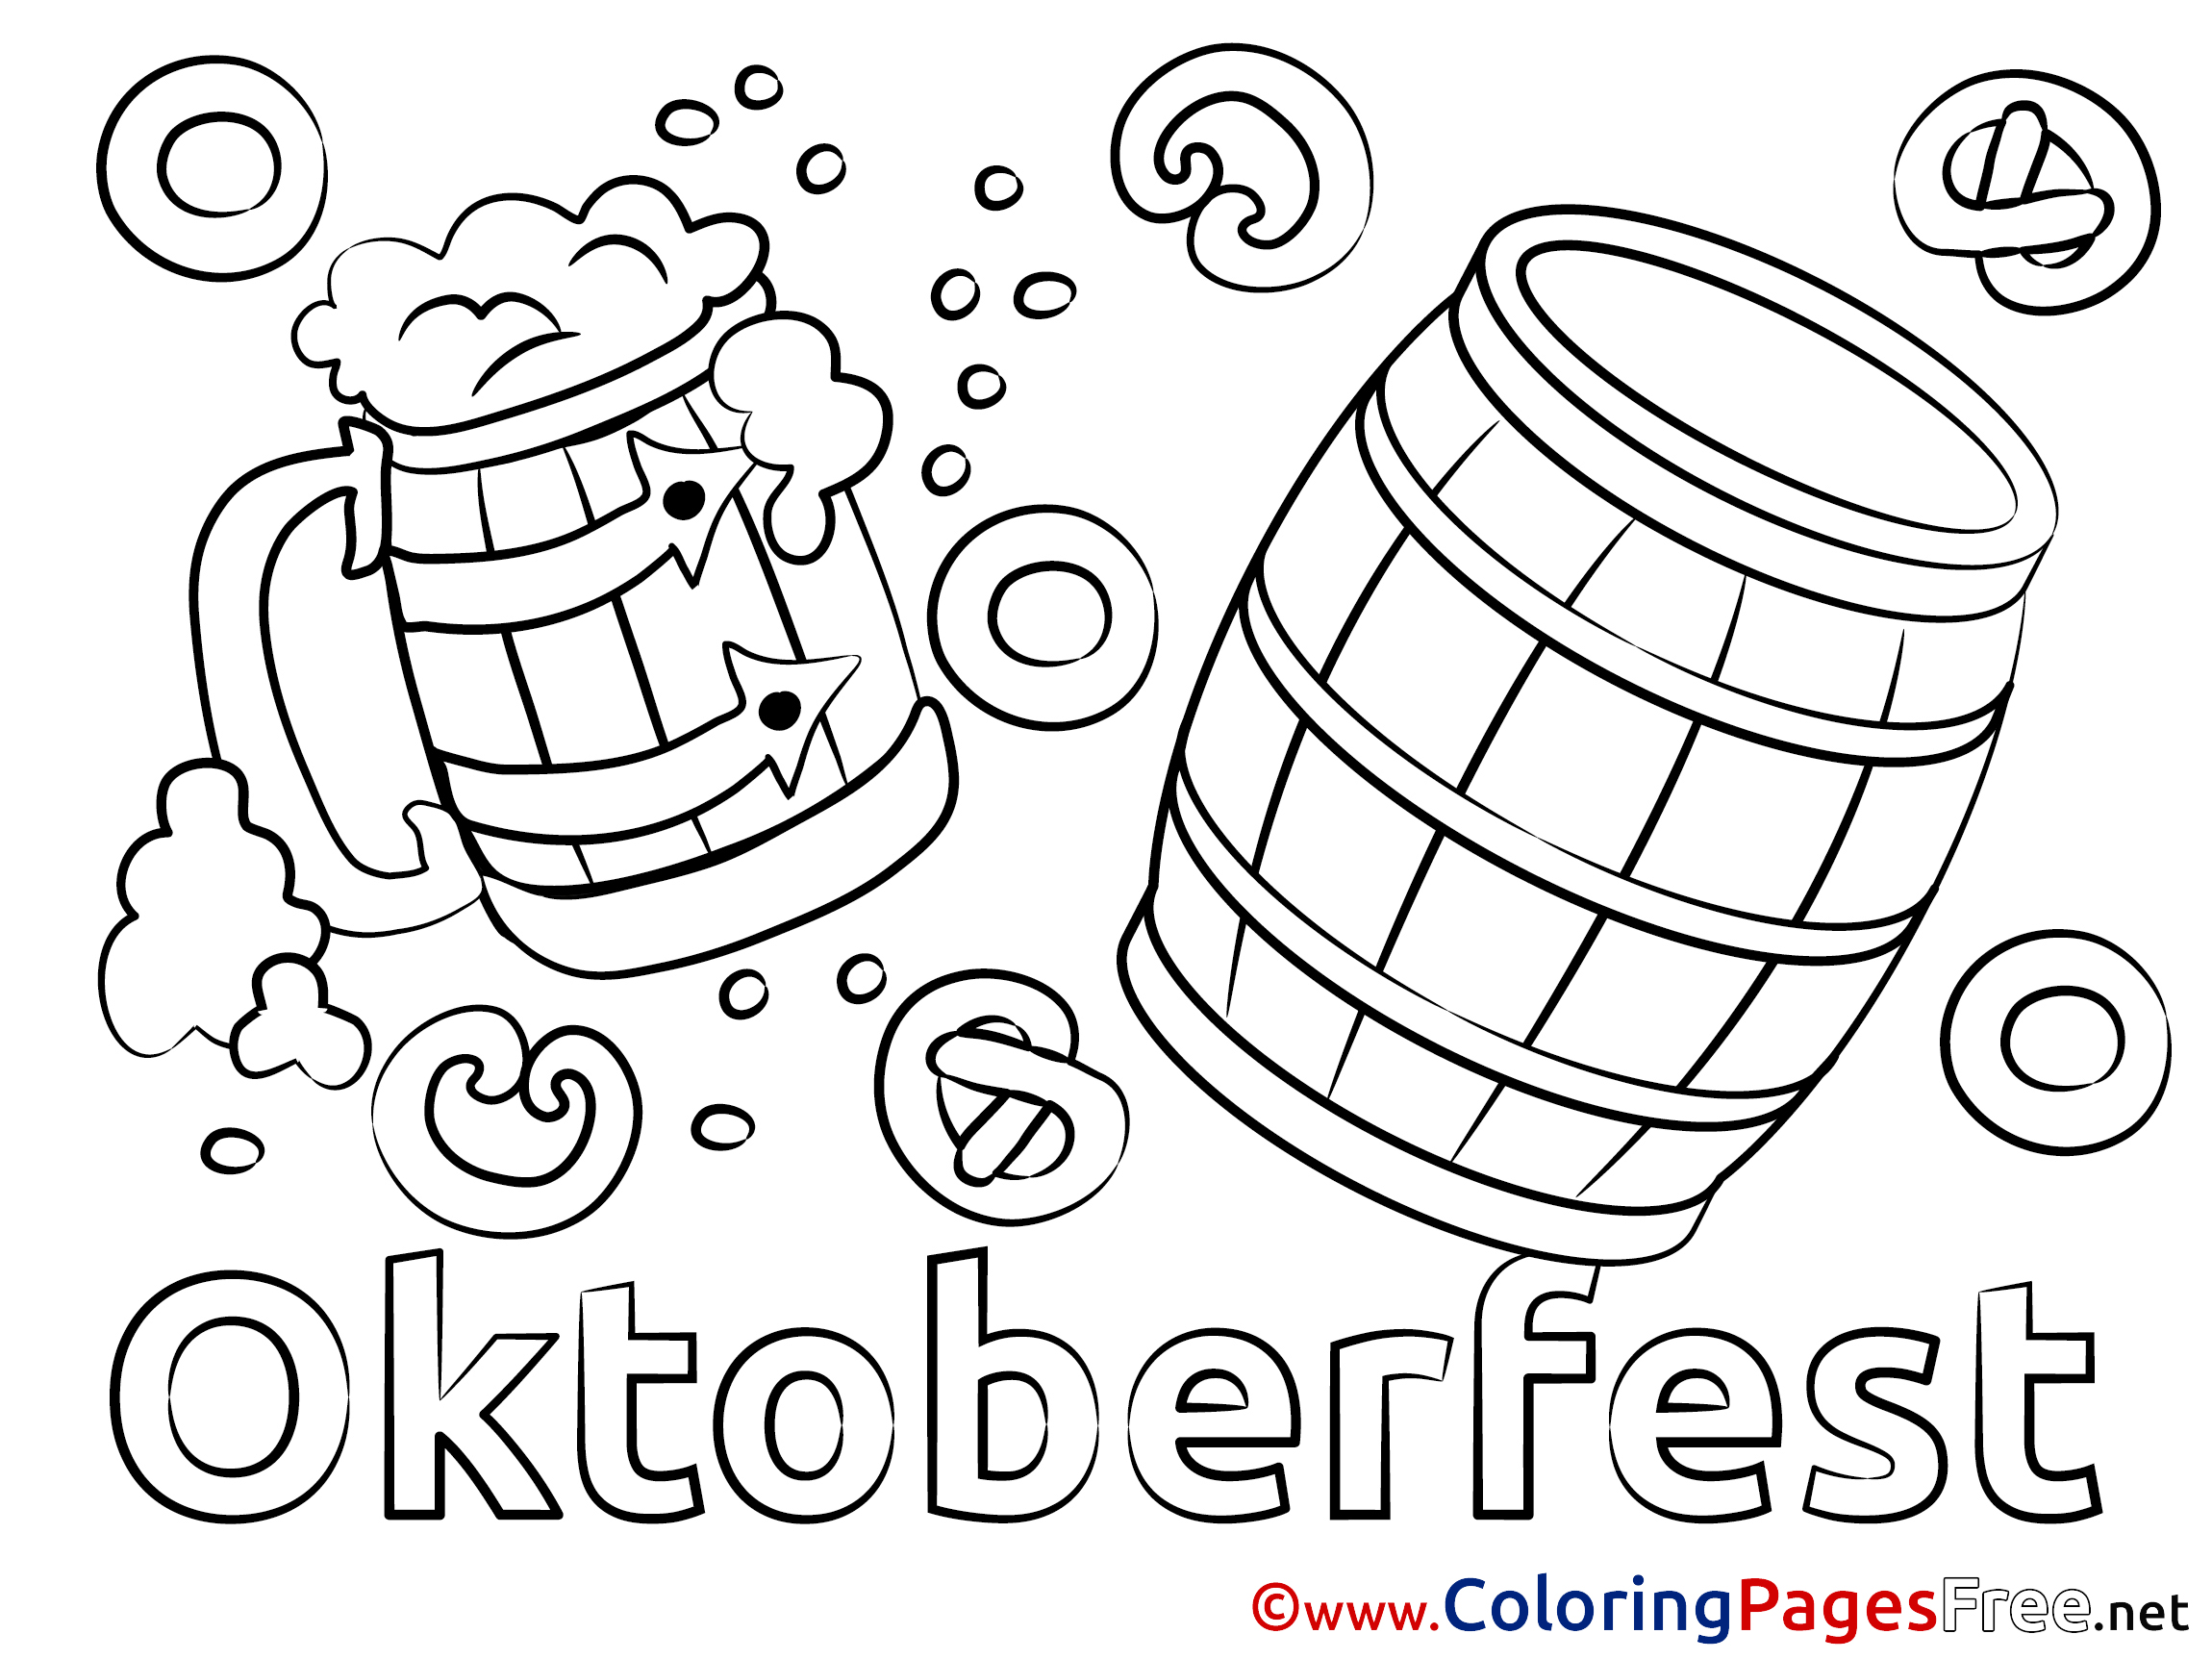 barrel oktoberfest coloring pages for free